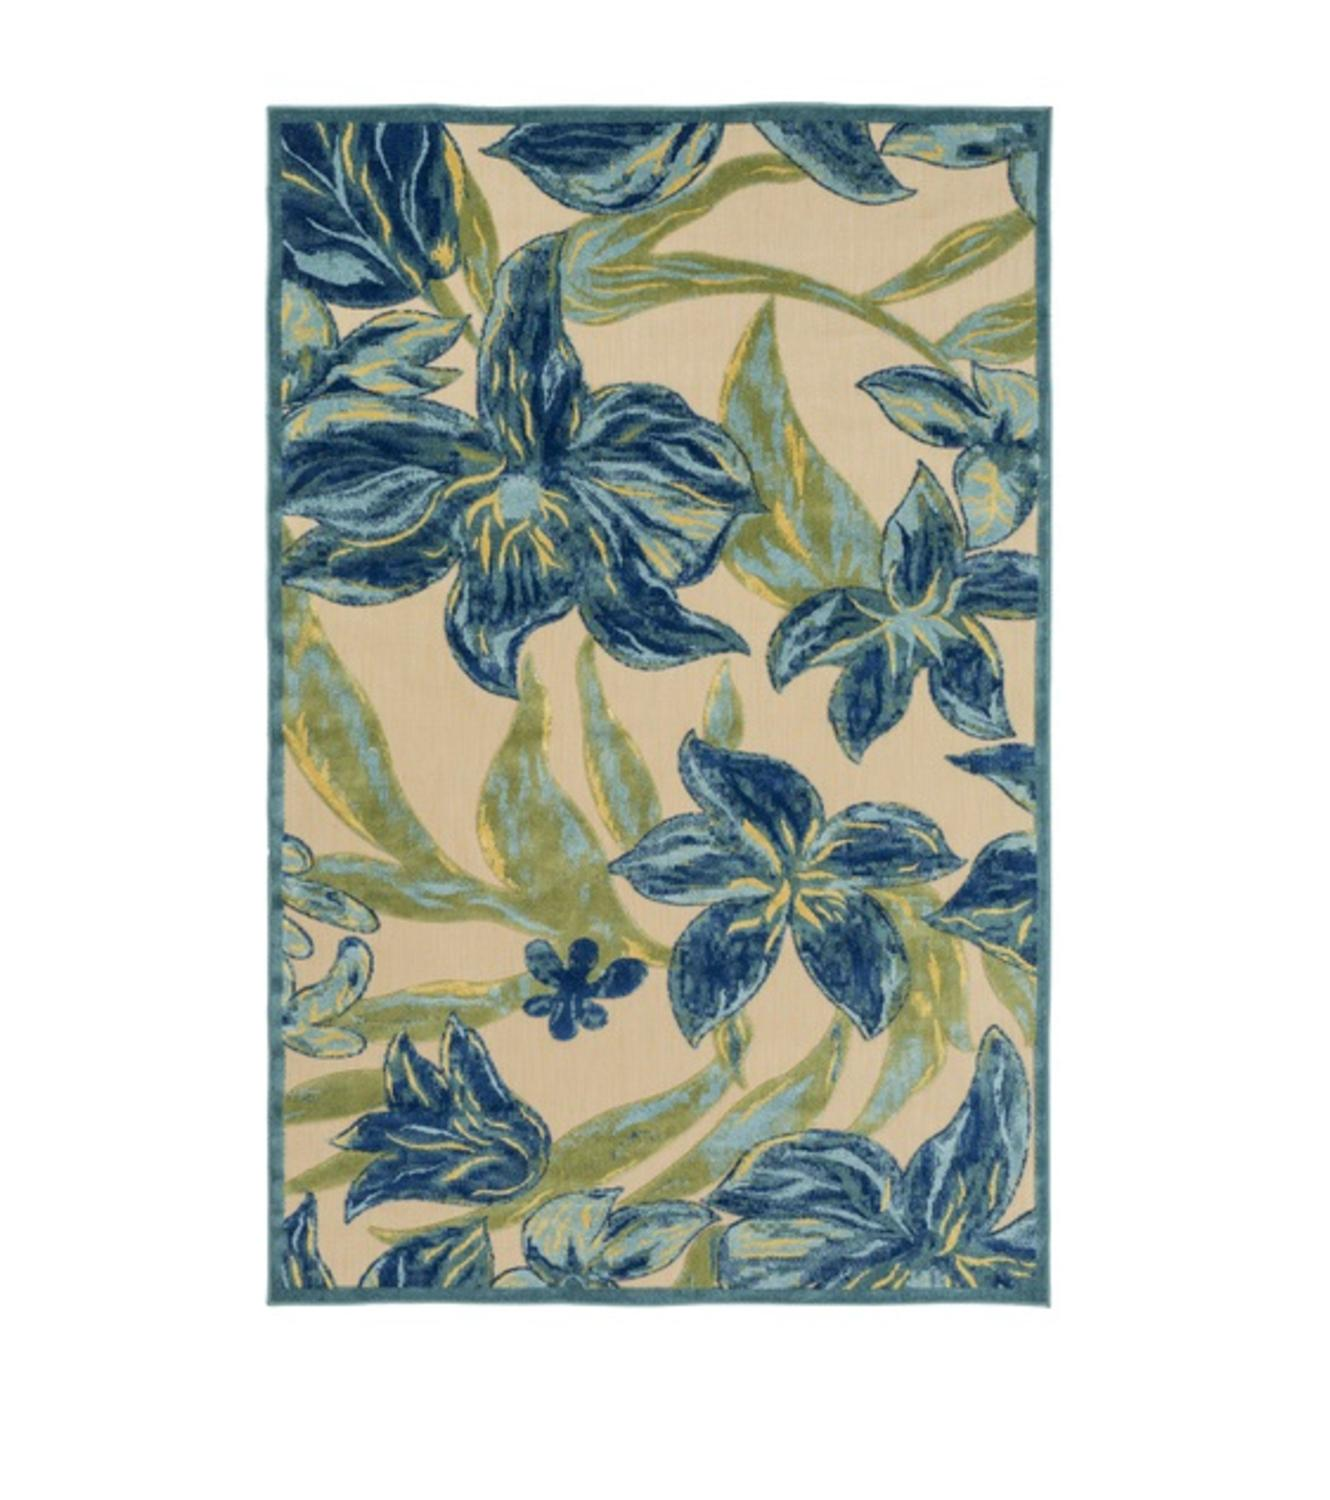 5' x 7.5' Island Florals Caribbean Turquoise and Goldenrod Outdoor Area Throw Rug by Diva At Home